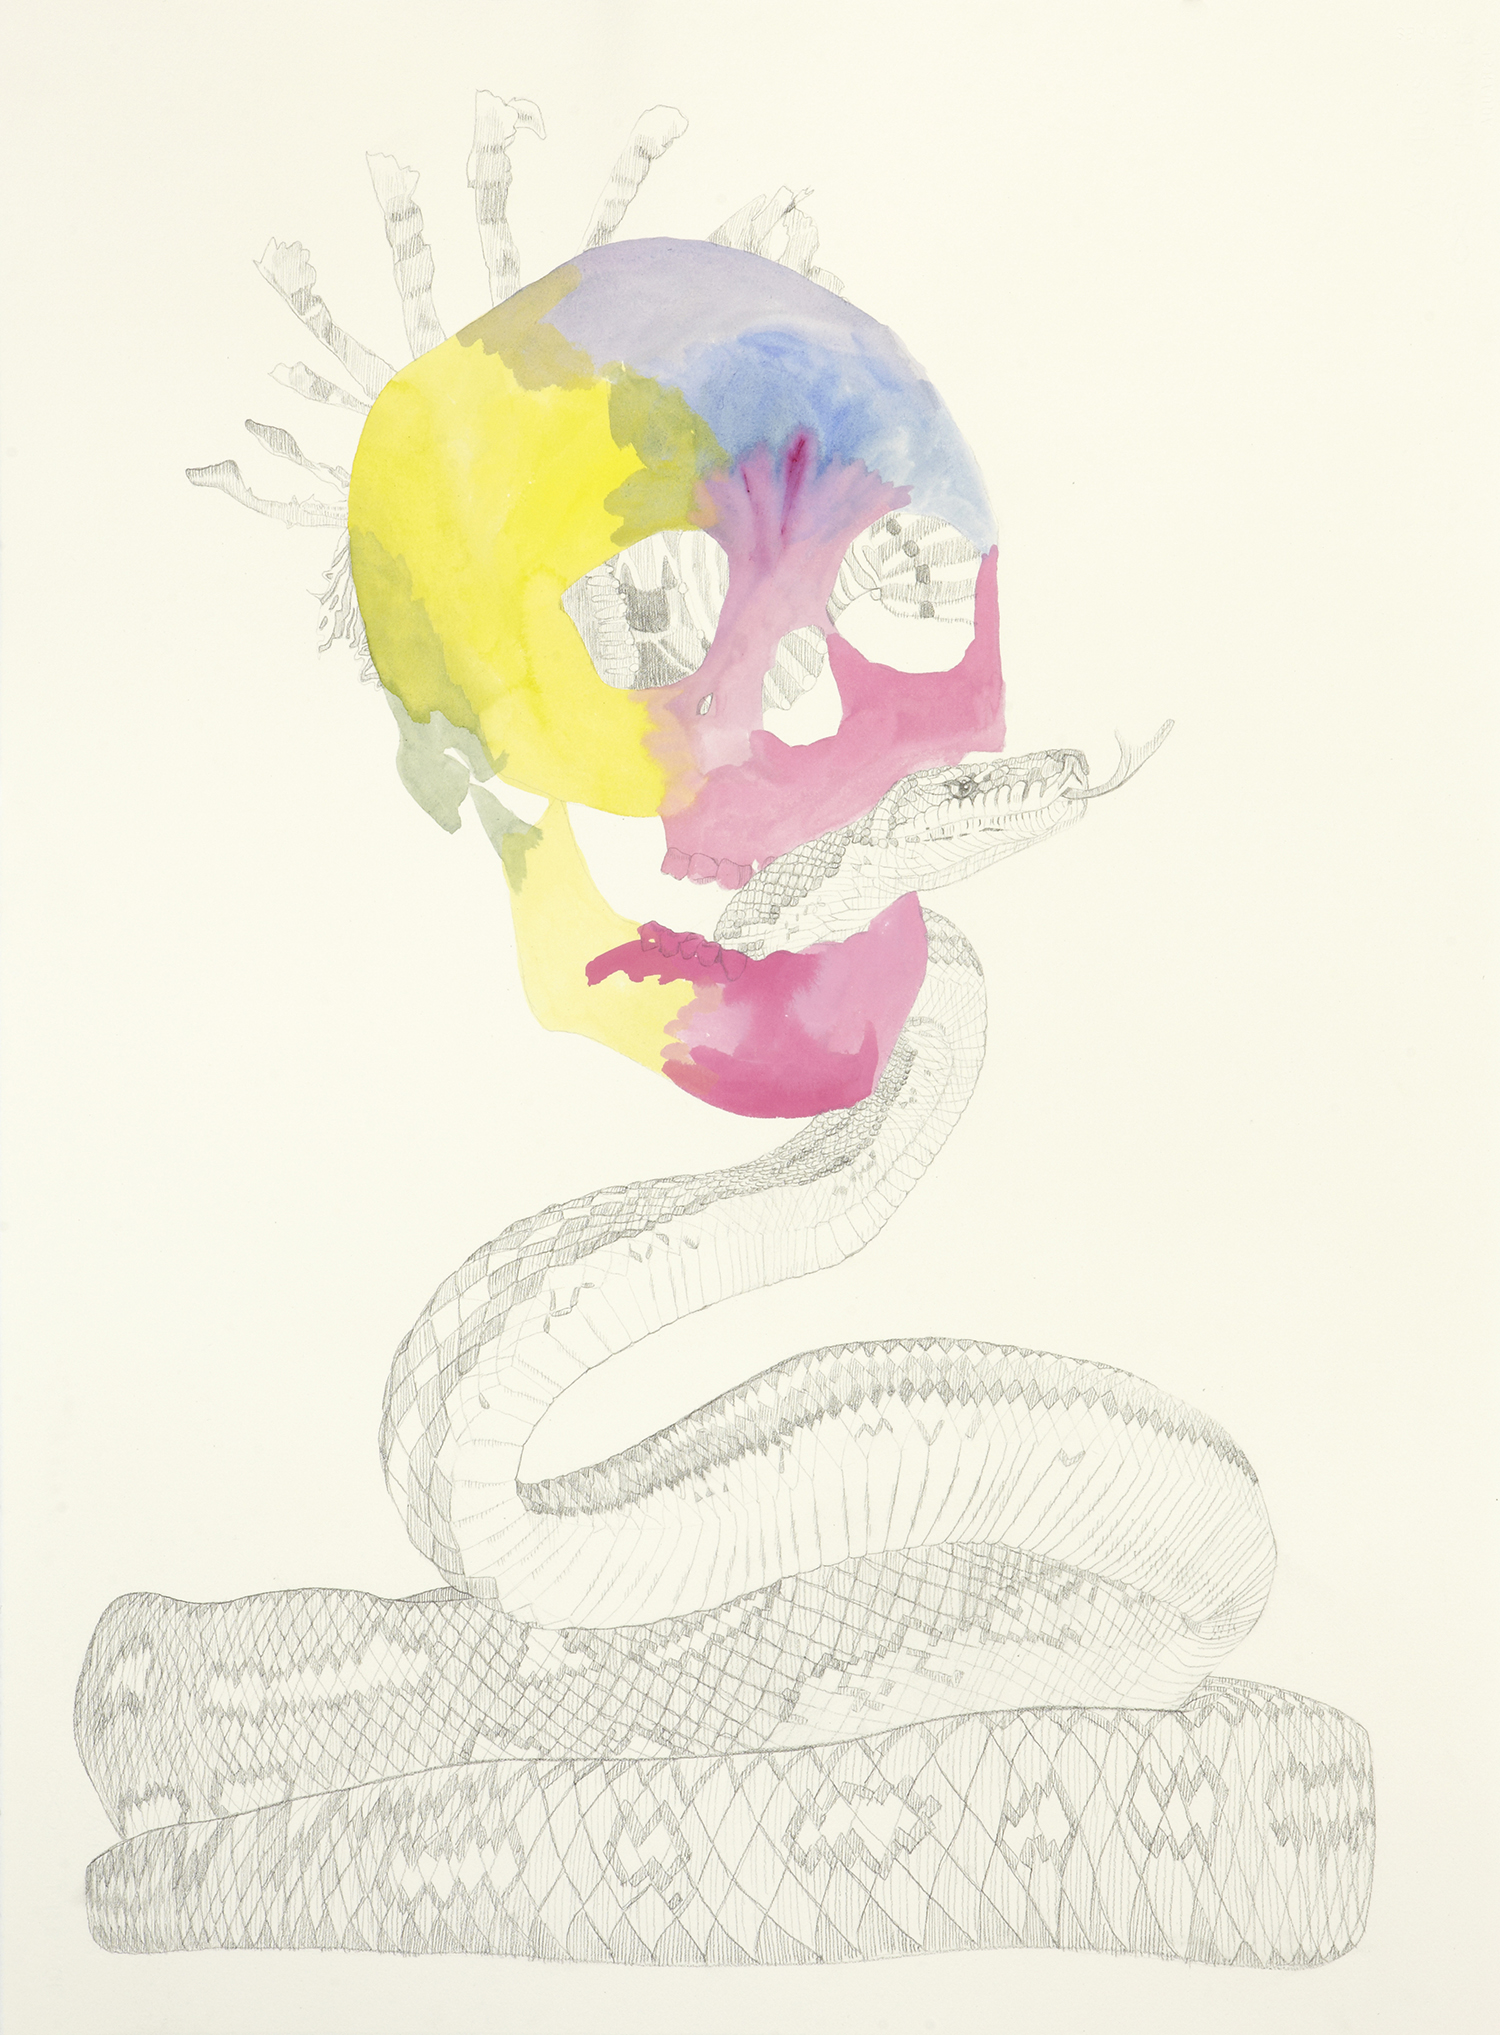 Here There Be Monsters, 2011, Watercolour and pencil on paper, 56.0 x 76.0 cm, Photo: Sam Scoufos